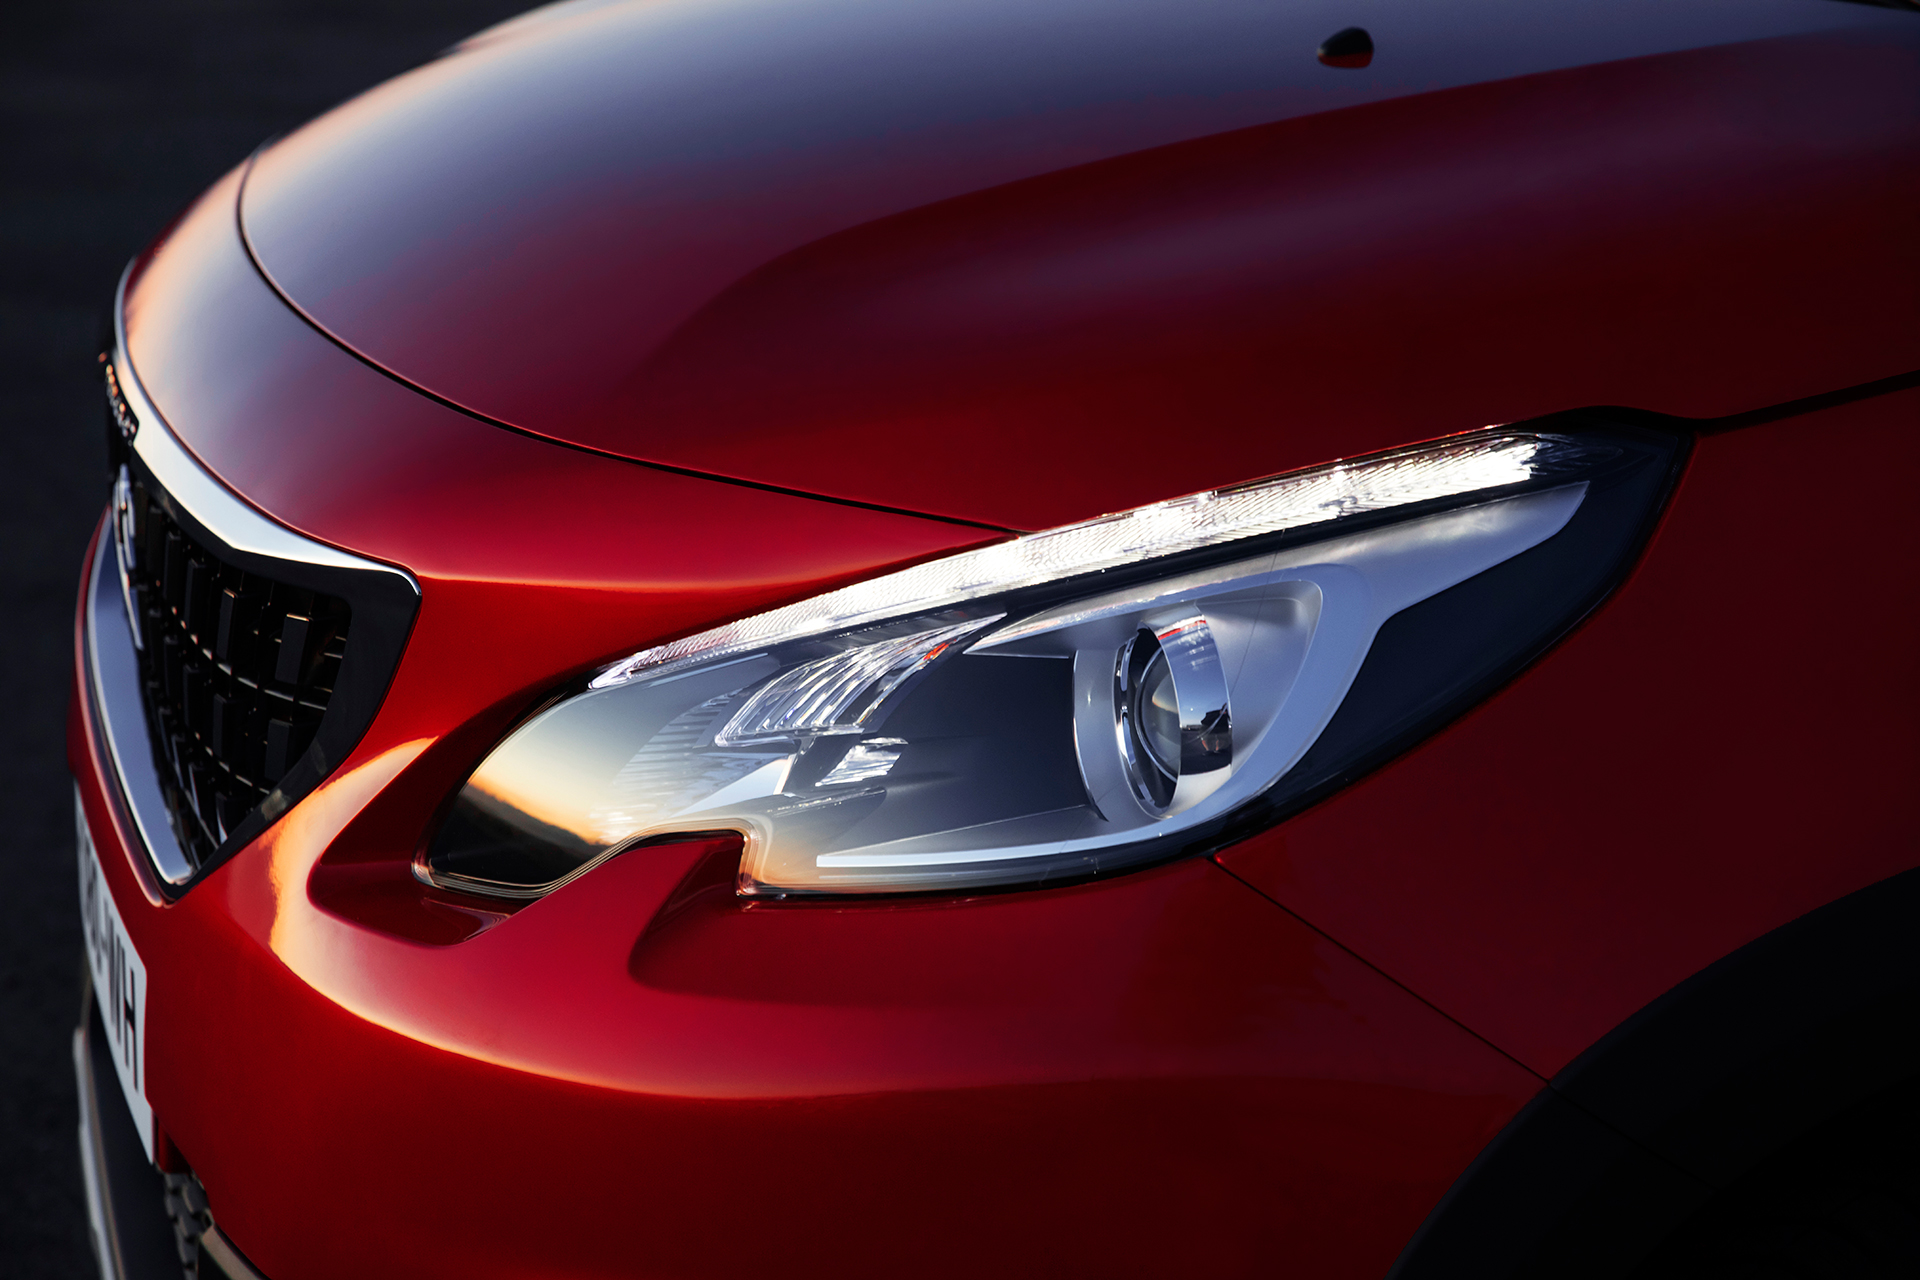 Peugeot 2008 - 2016 - optique avant / front light